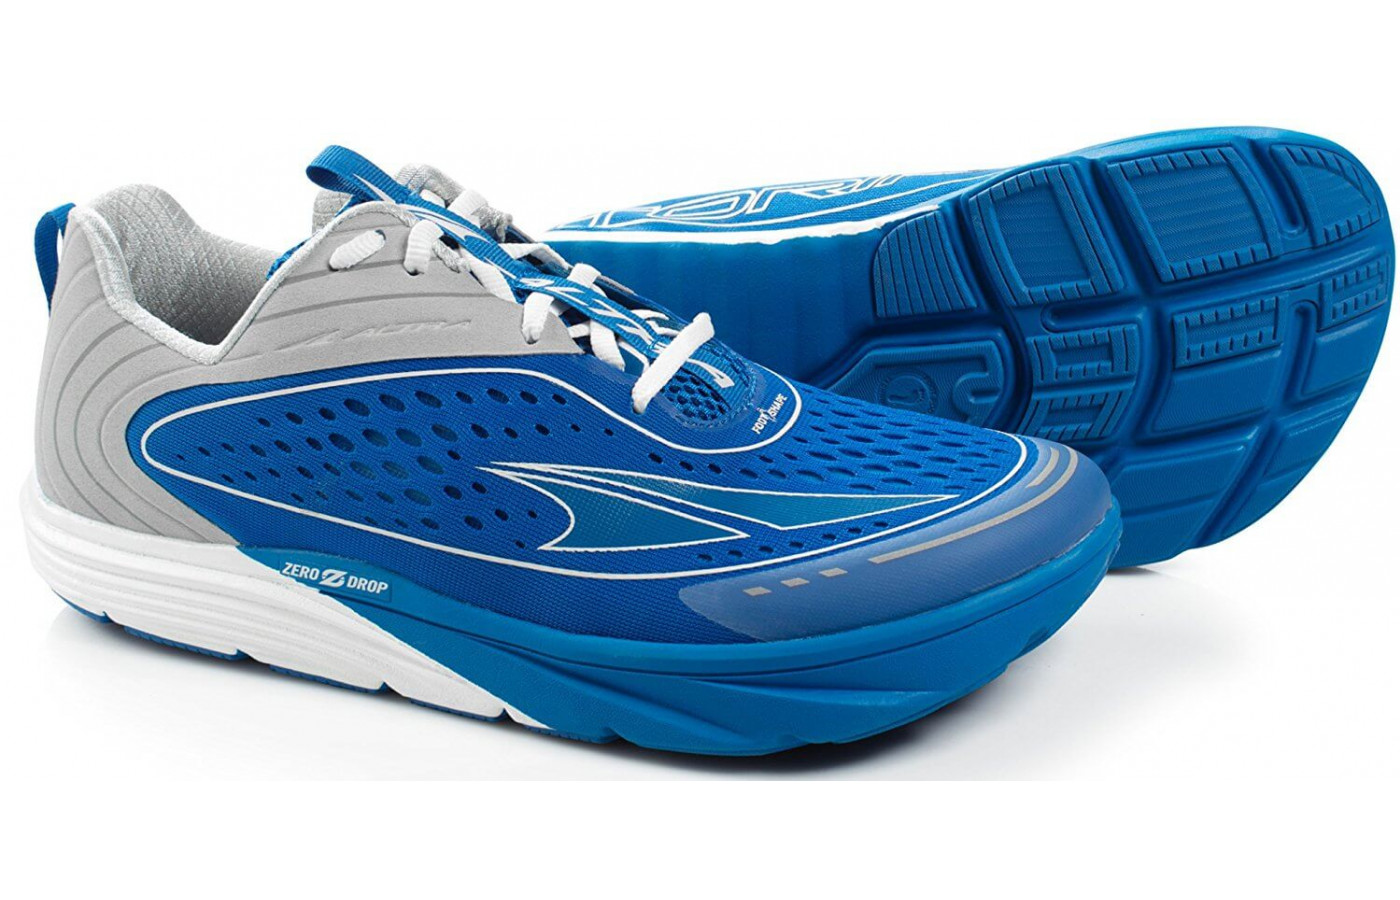 The Altra Torin 3.5 pair